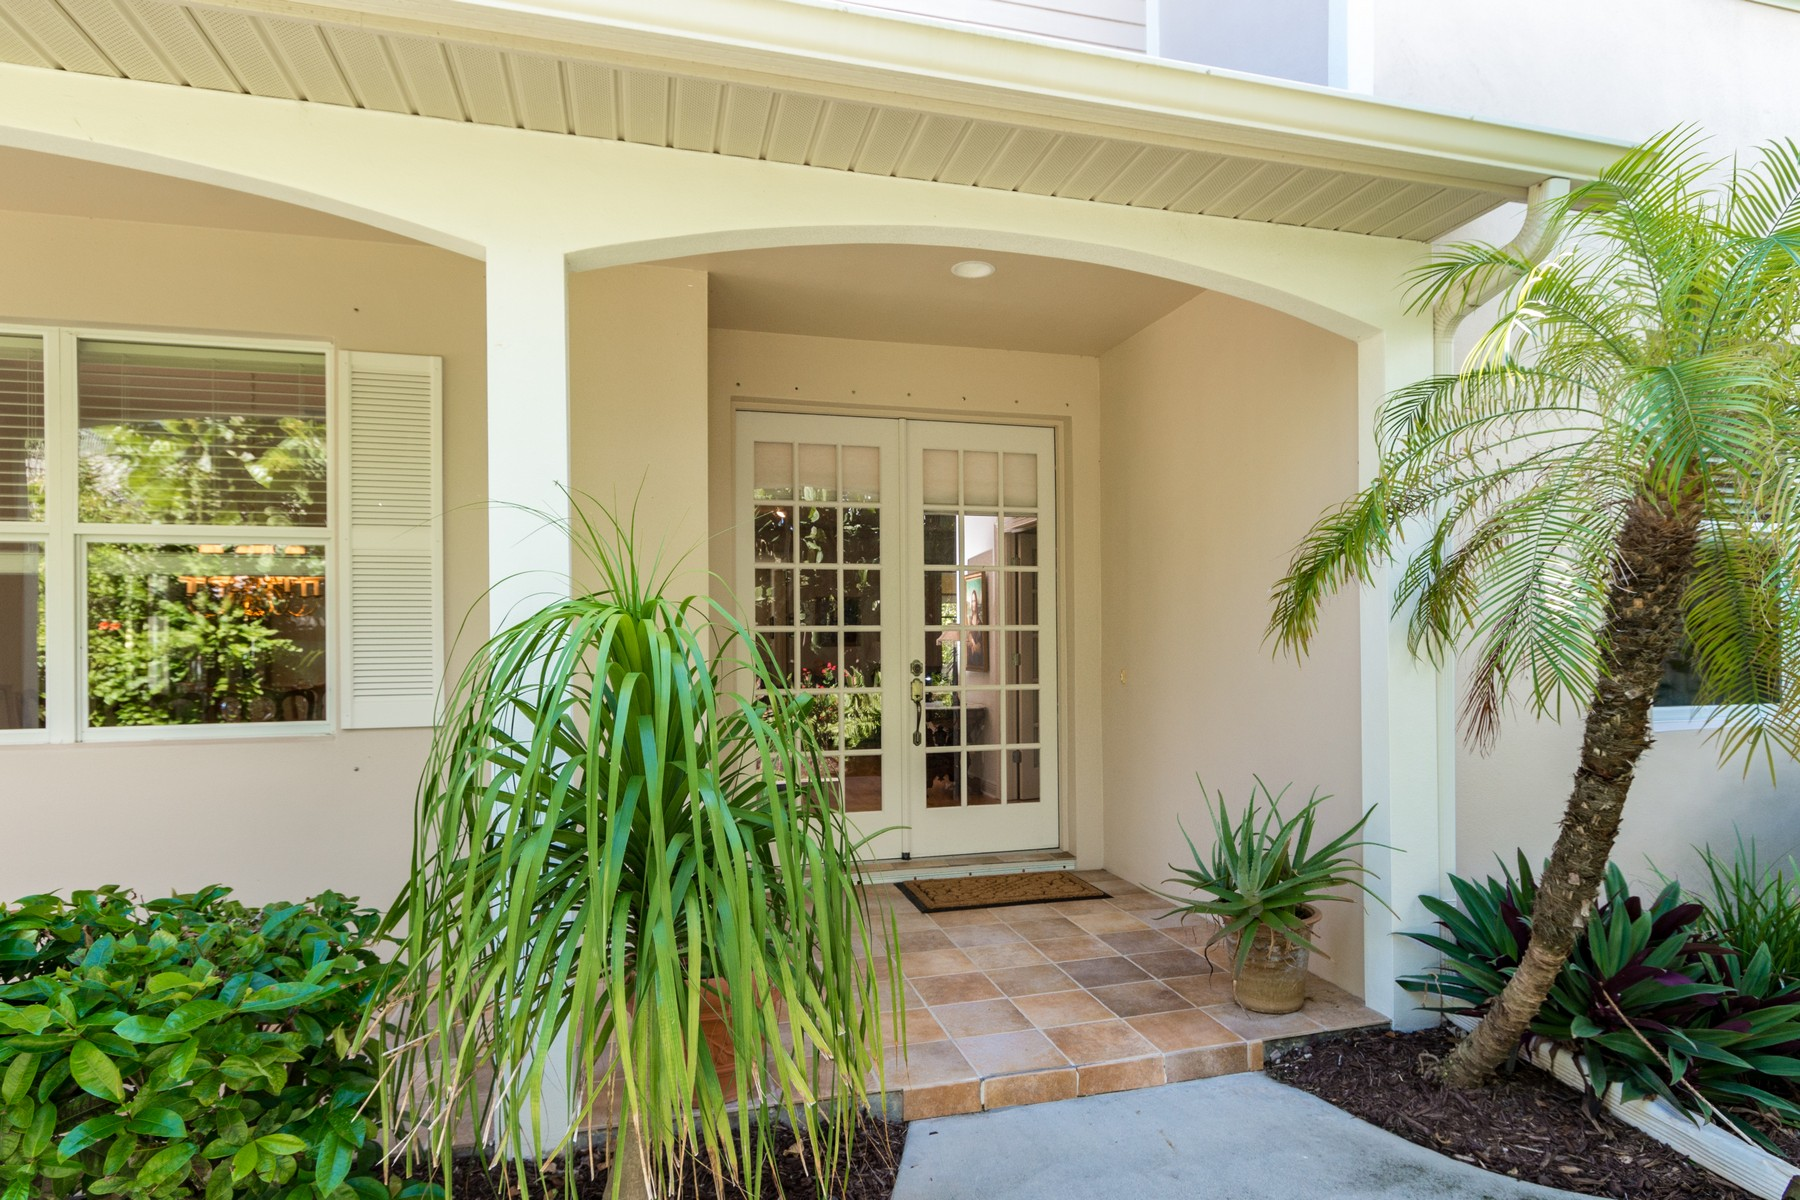 Additional photo for property listing at 205 Fourth Avenue  Melbourne Beach, Florida 32951 United States